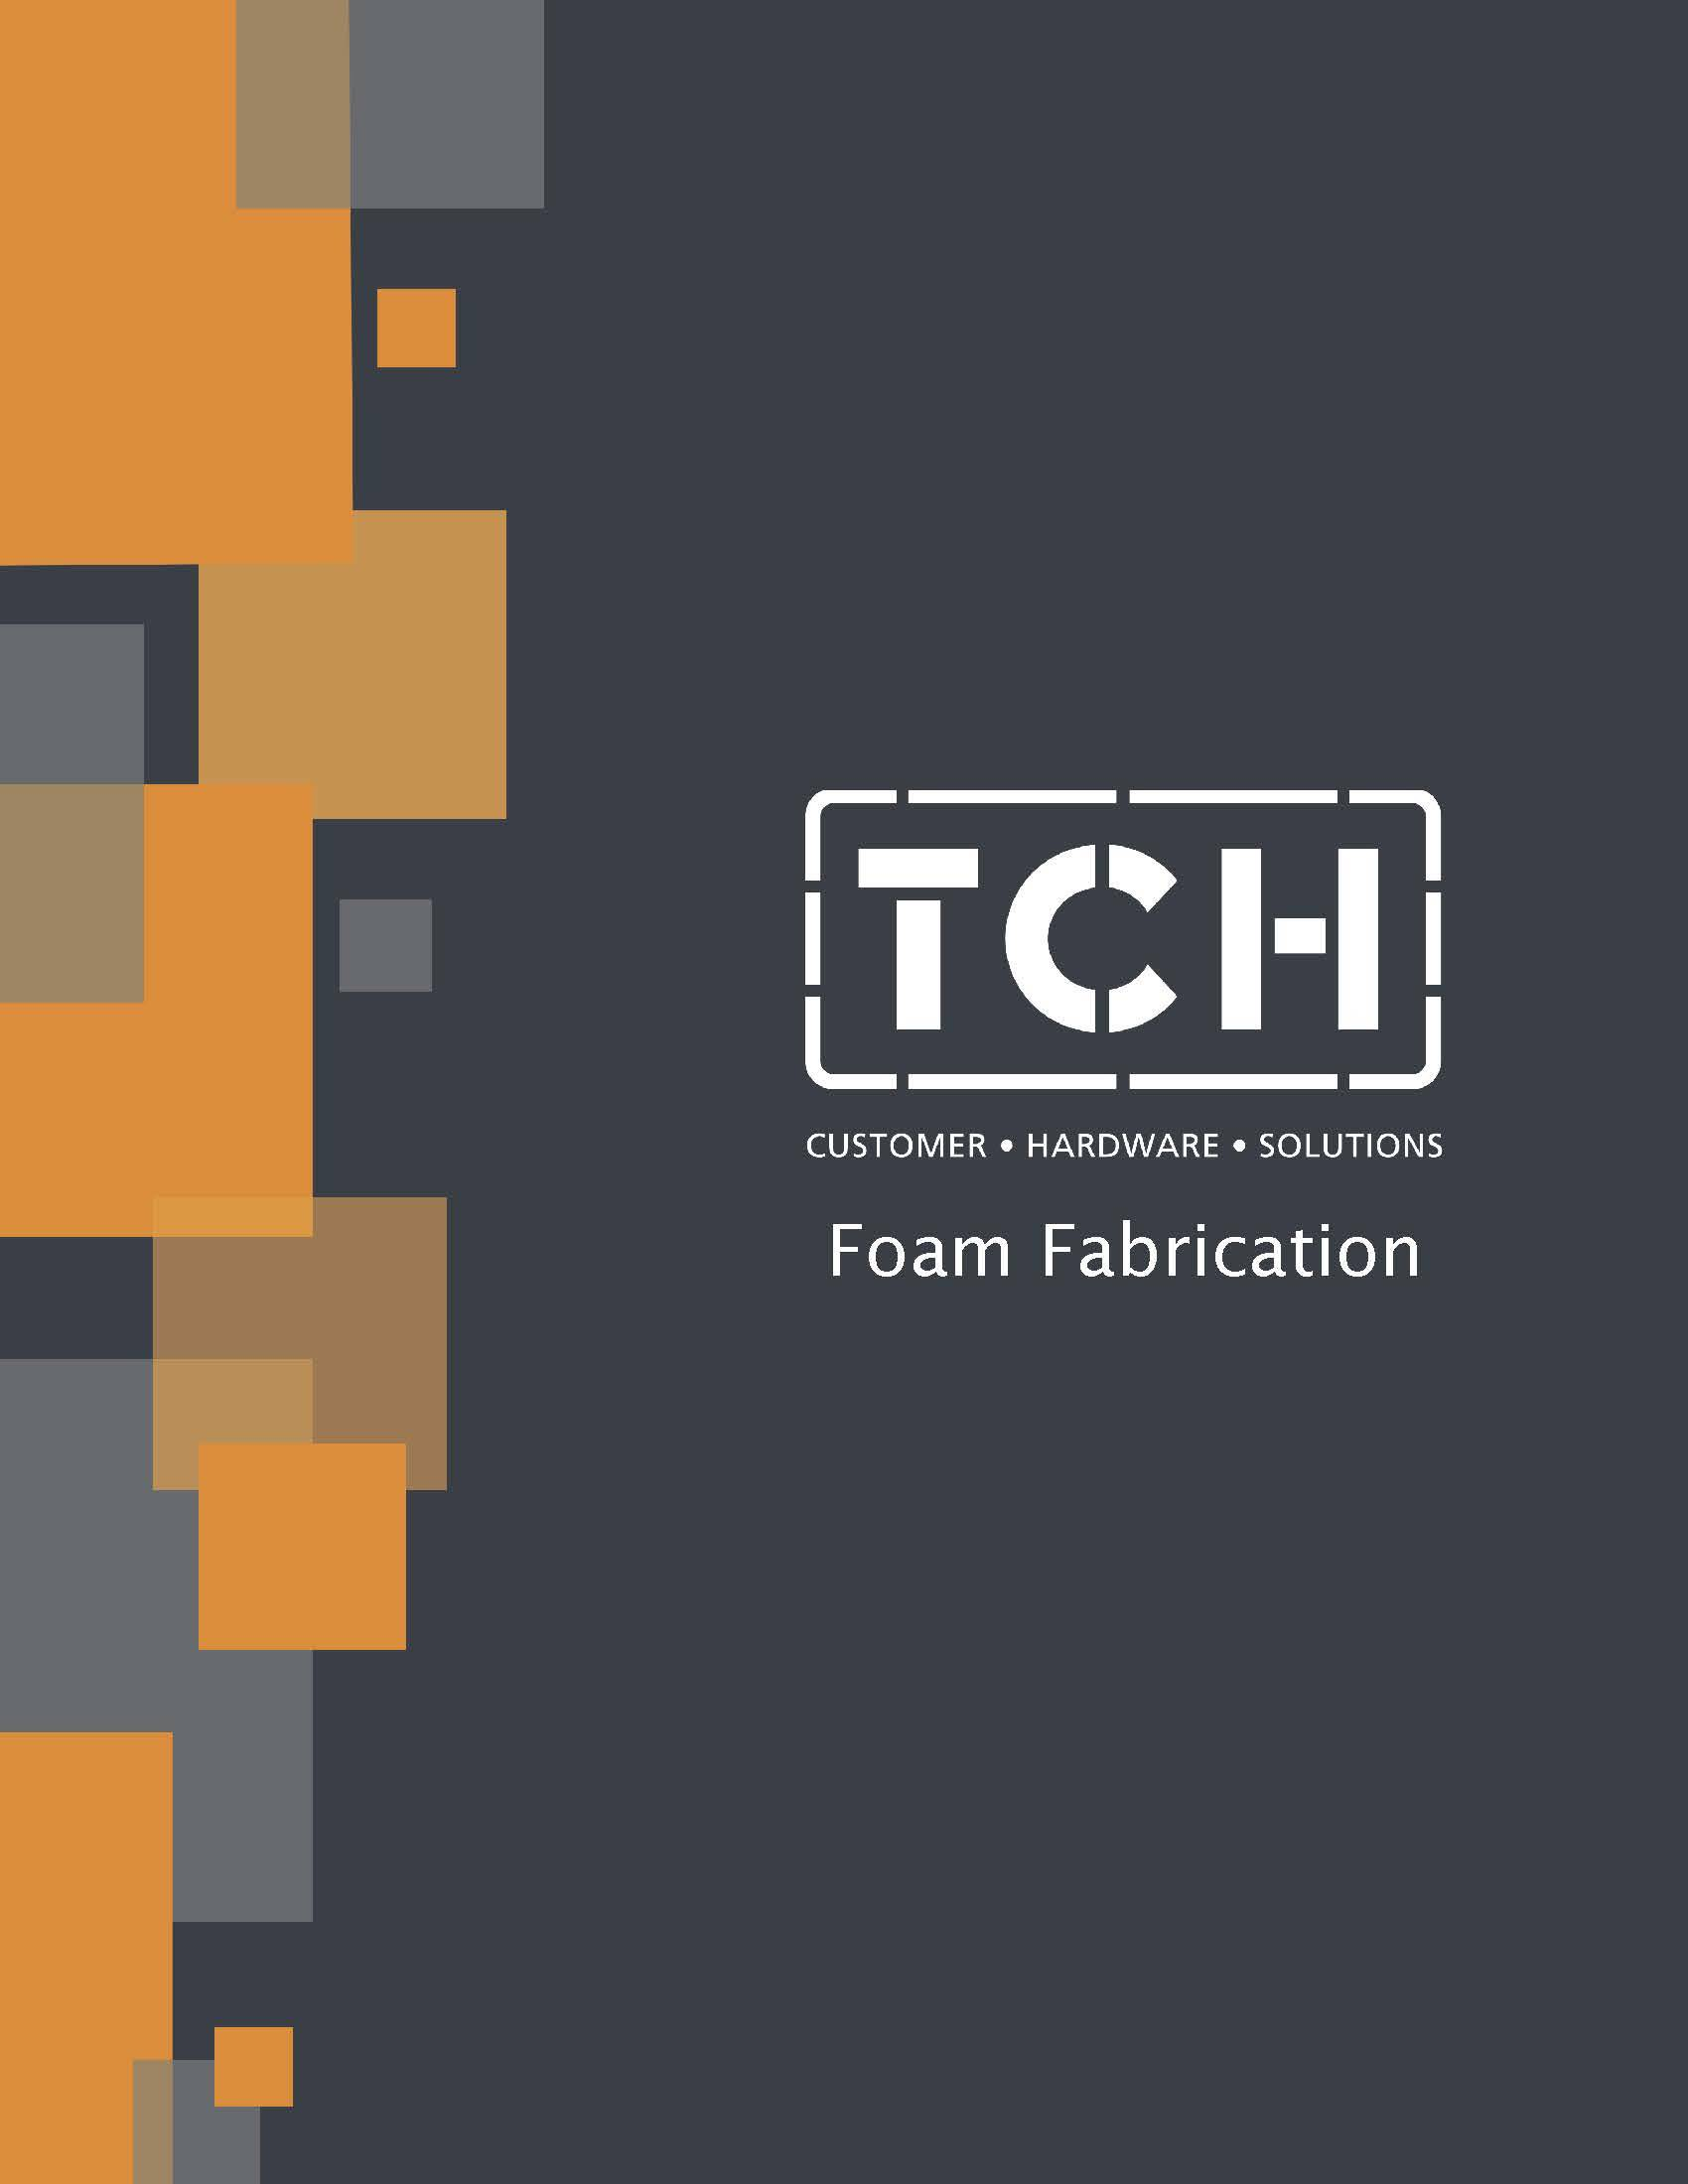 Cover of TCH's Foam Fabrication line card